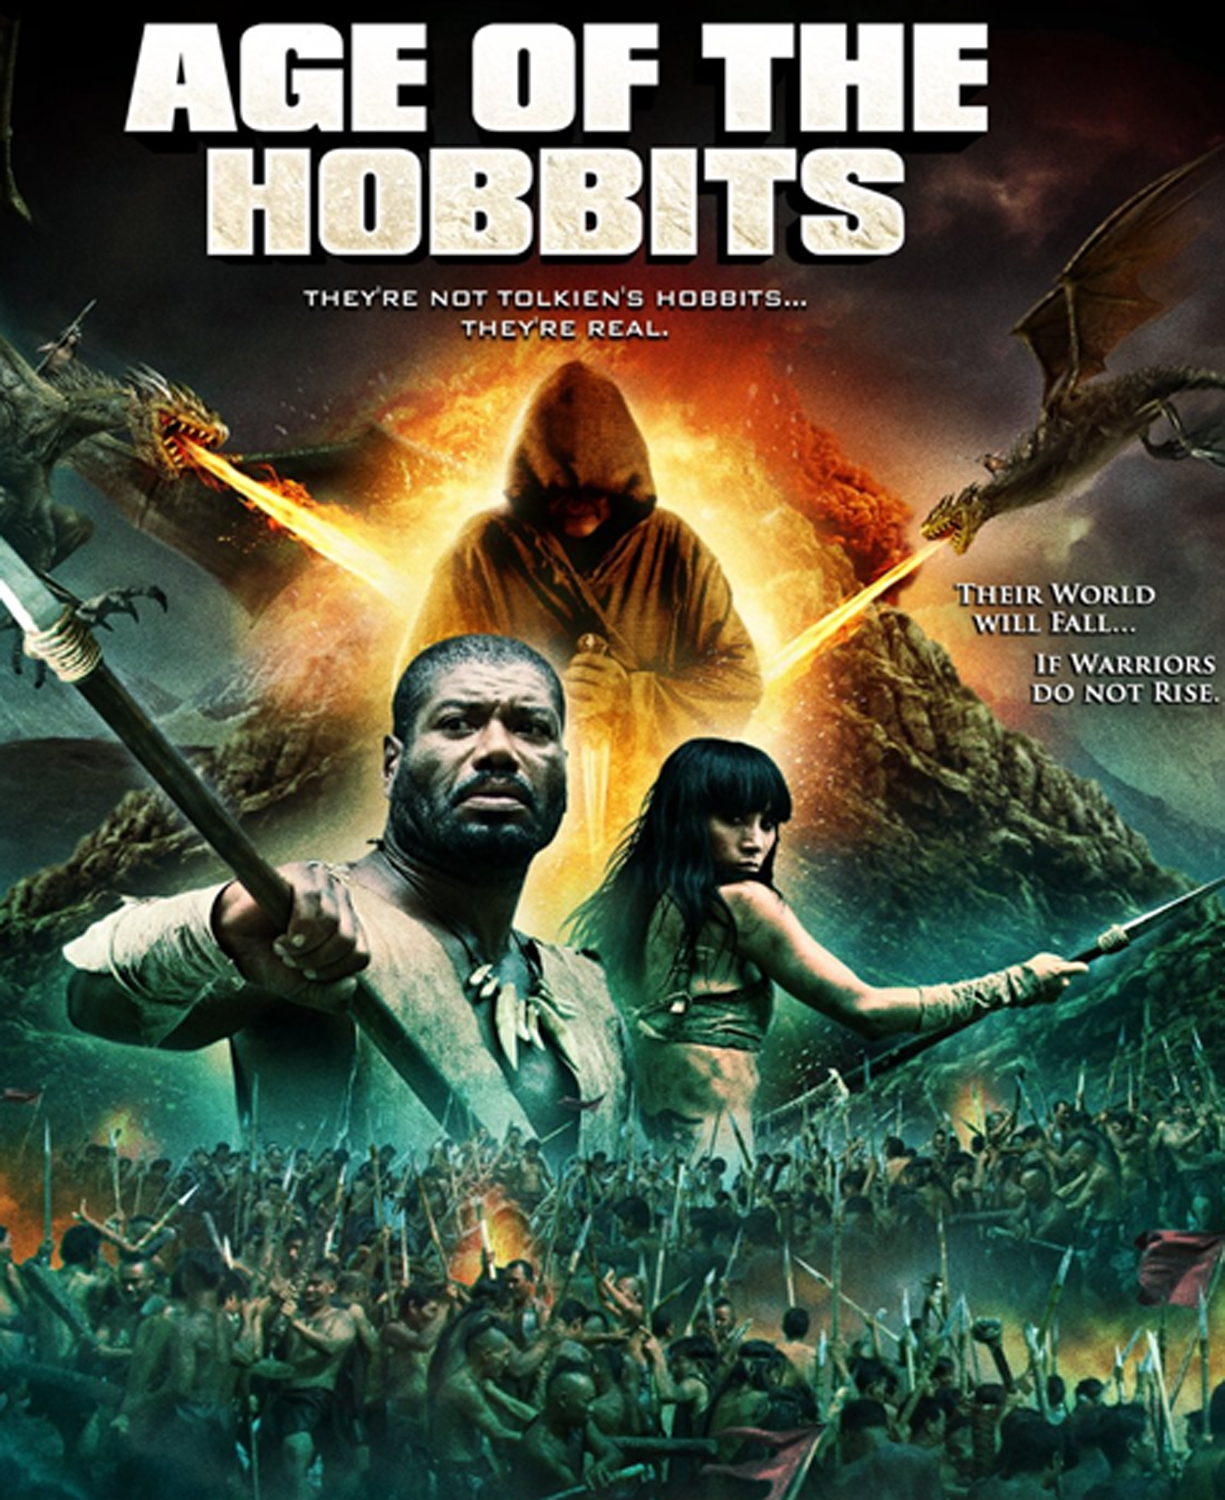 Age of the Hobbits 2012 Hindi Dual Audio 302MB BluRay ESub Download